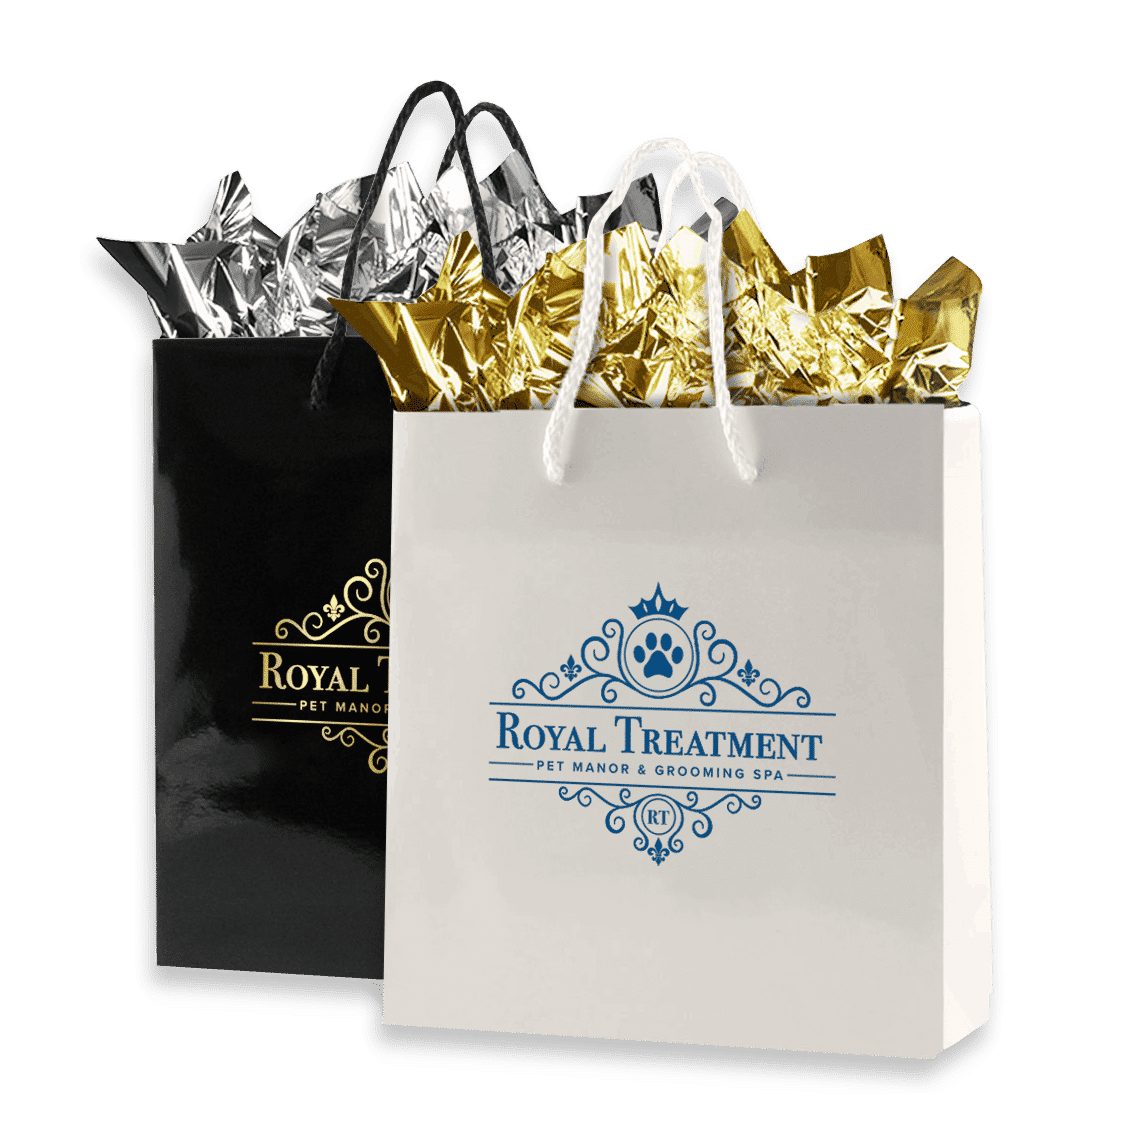 client gift bags with brand name